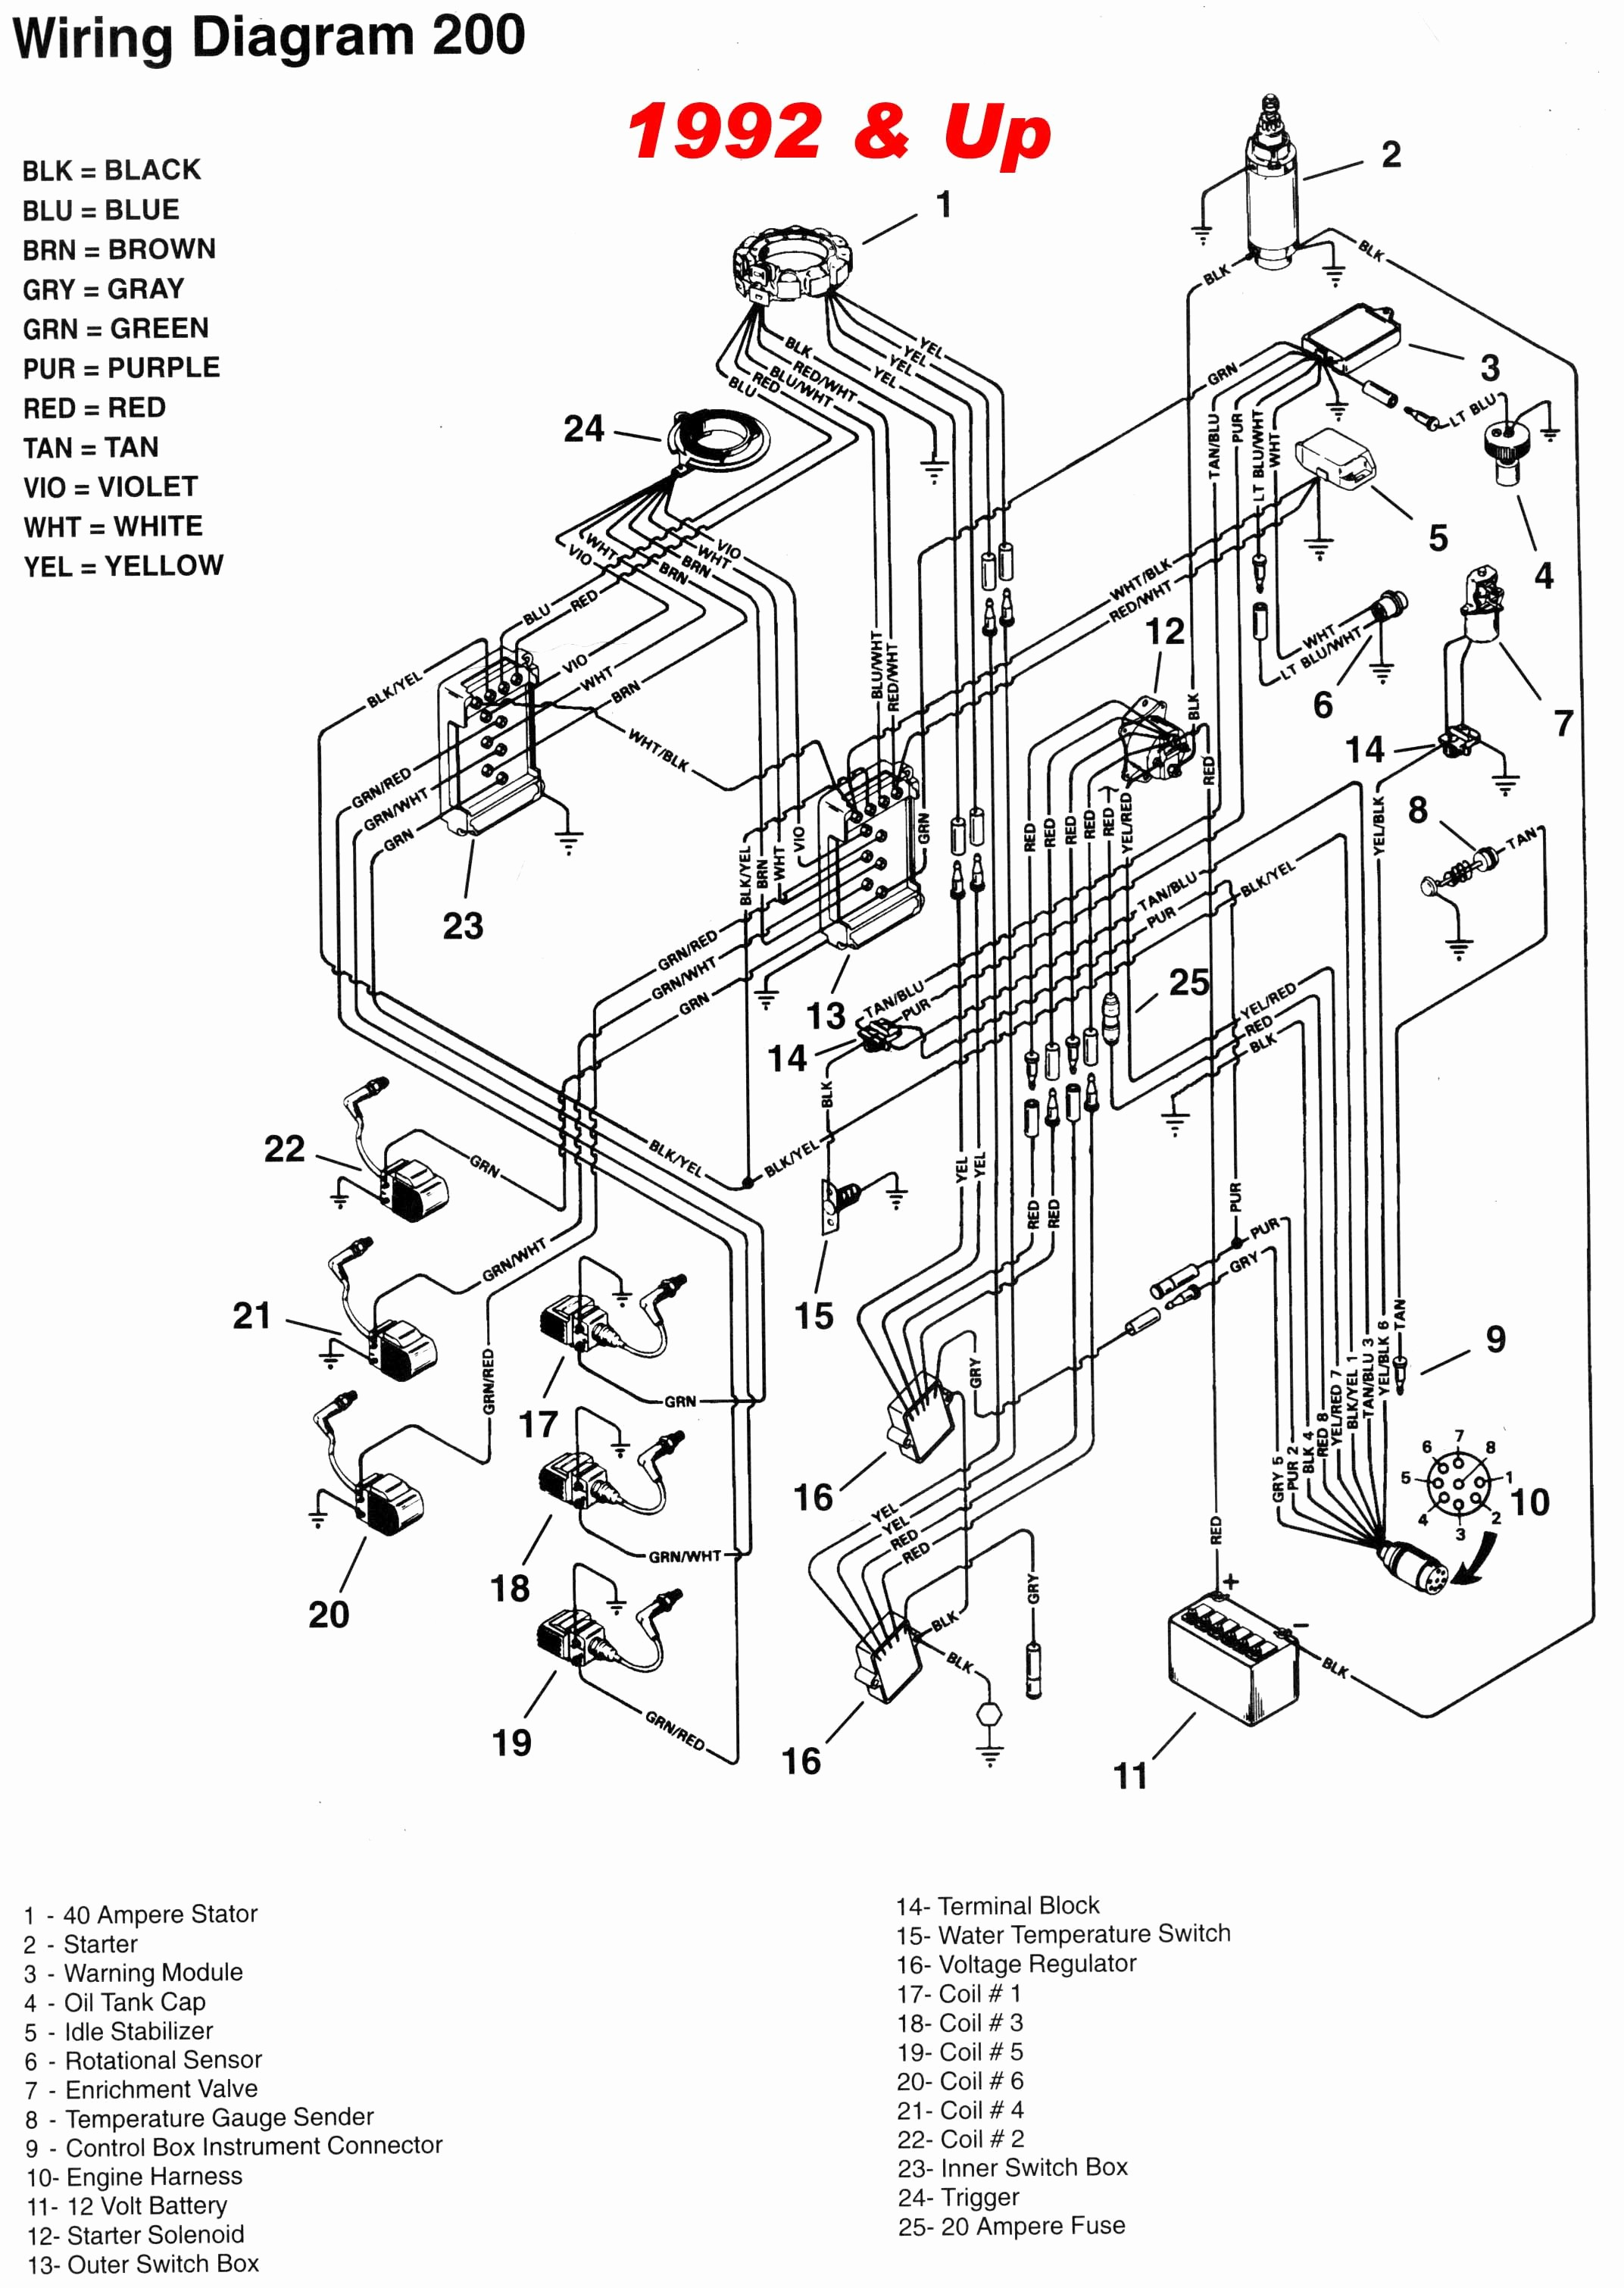 1967 Mercury Cougar Wiring Diagram 2000 Engine My 175 All Kind Diagrams Of